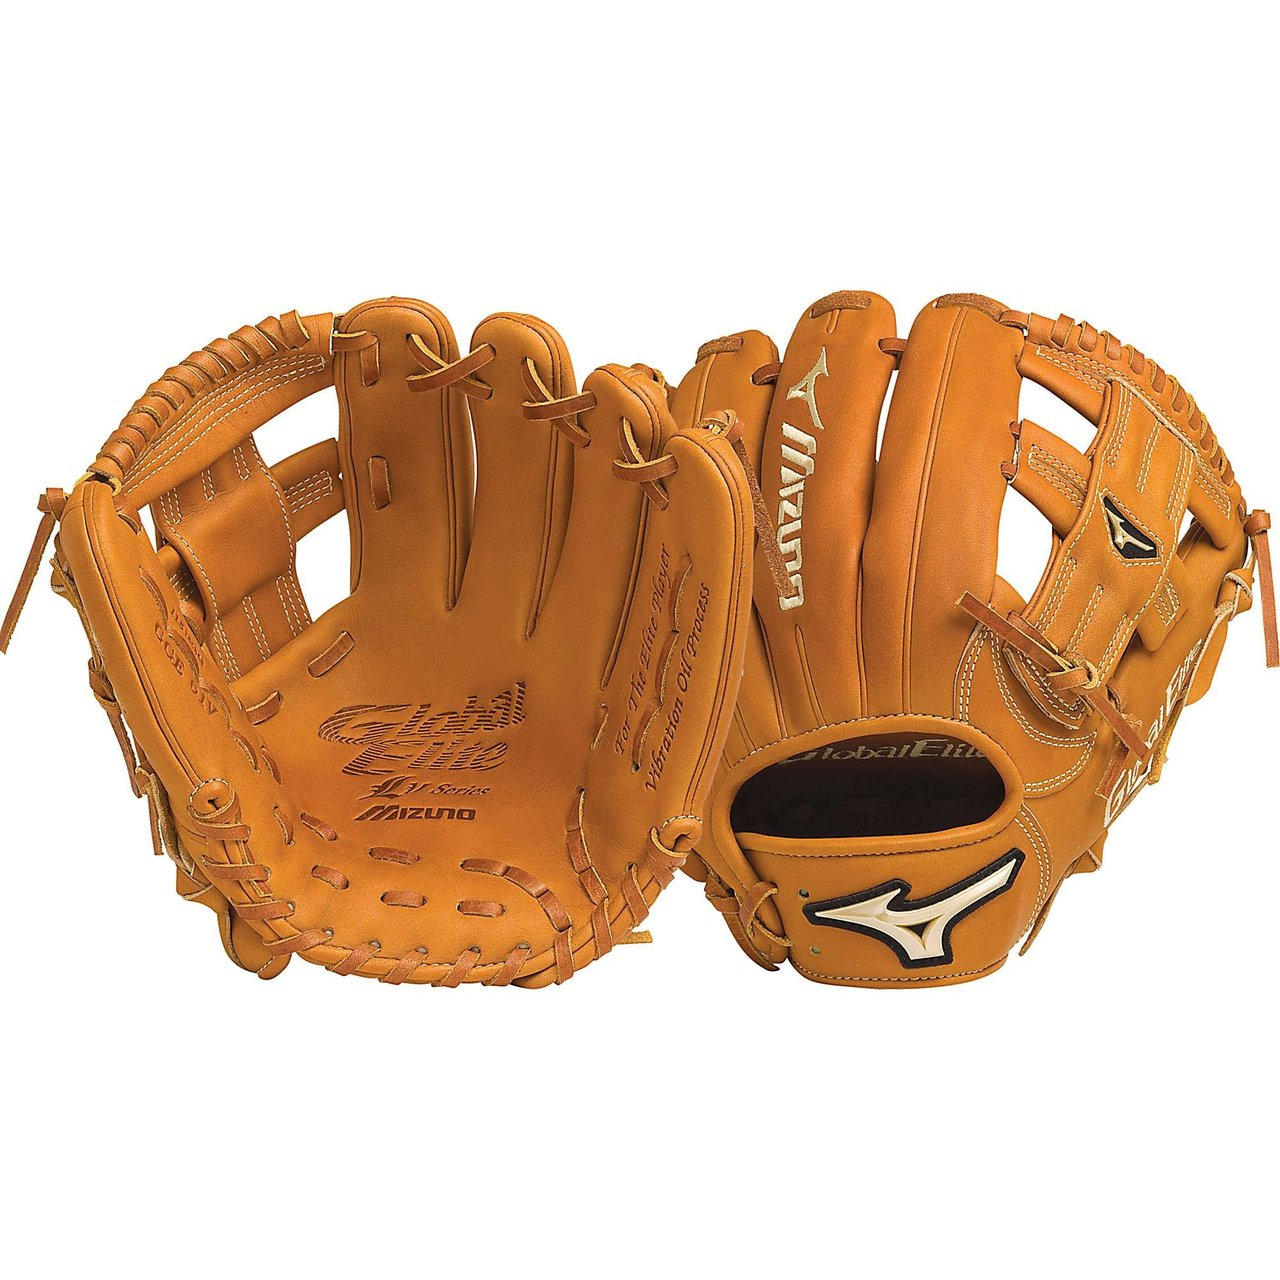 Mizuno GGE61V Global Elite VOP 11.5 Infield Baseball Glove (Right Handed Throw) : Mizuno vibration processed hand oiled leather and roll Welting which increases structure and support throughout the fingers. Rugged polyurethane patch and antimicrobial cushioned wrist pad for a secure fit. Thumb Embroidery. VOP Leather Palm.